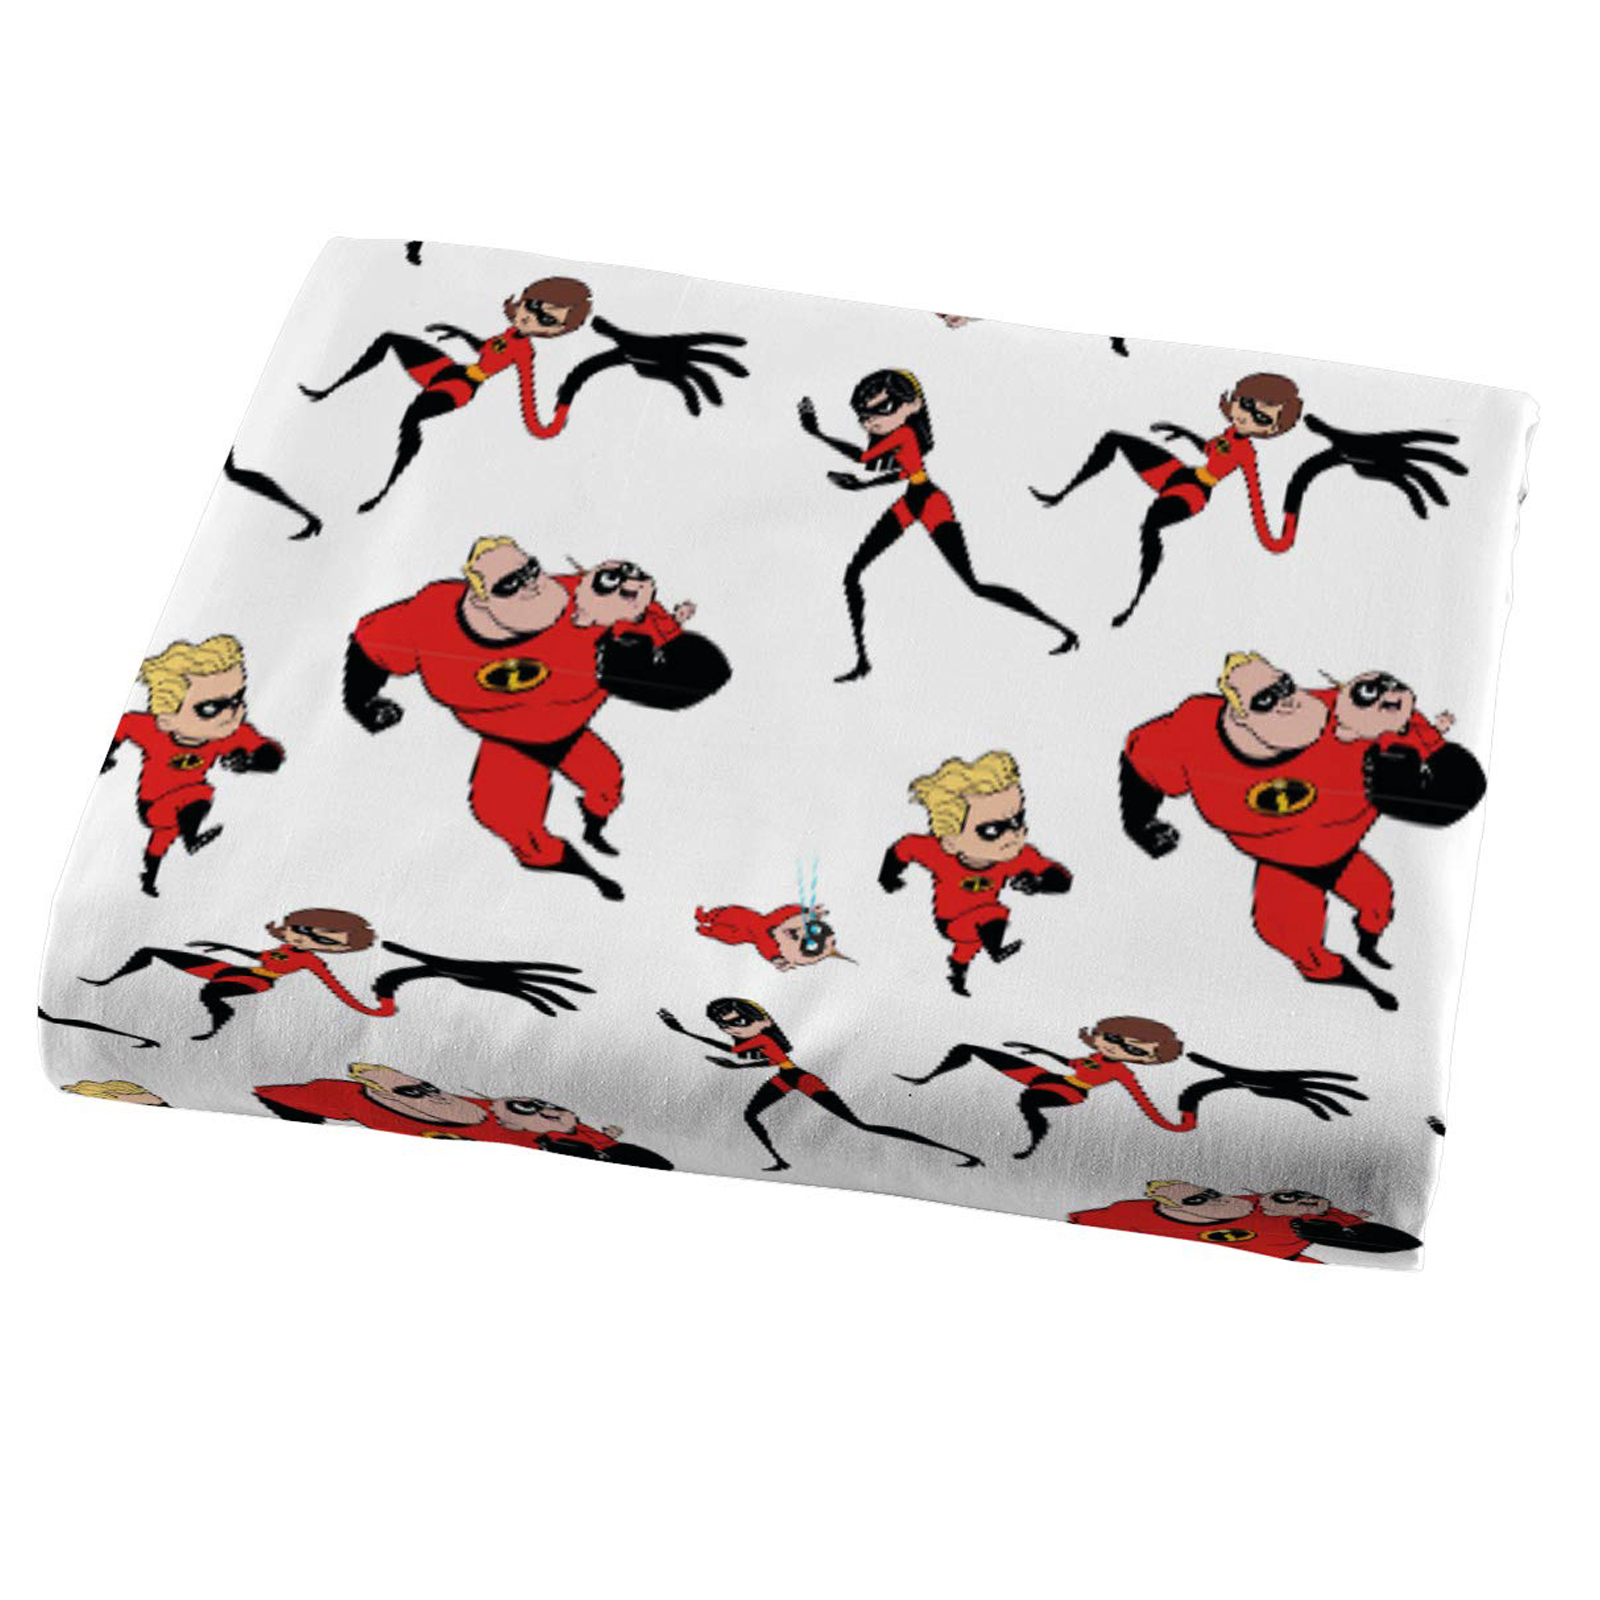 Disney Pixar Incredibles 2 Kids Microfiber Twin Sheet Set Home Bedding 3 Pieces